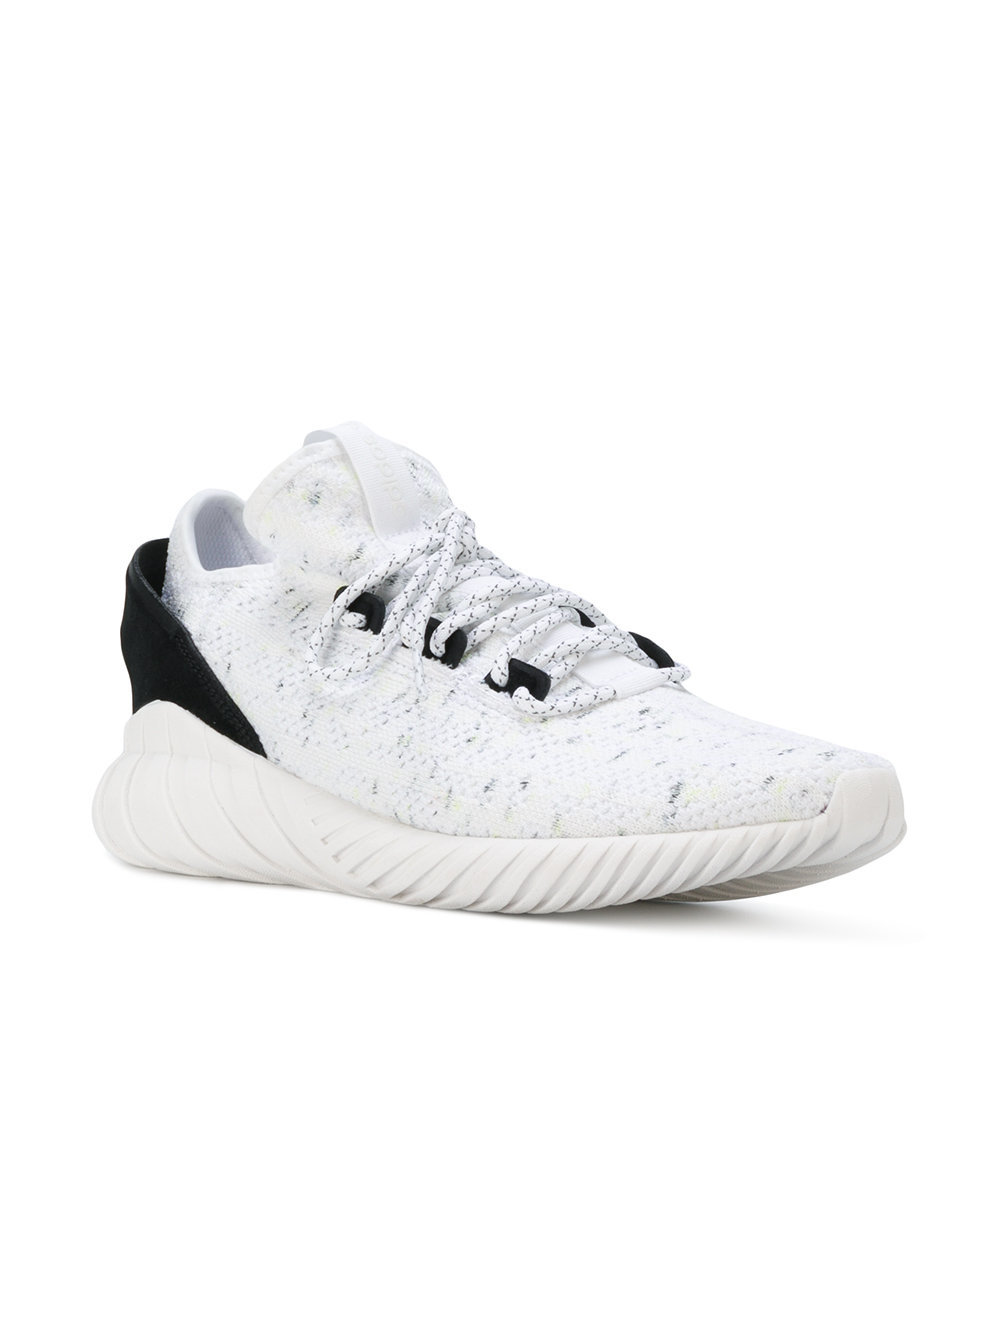 best service 9bab7 c540f $118, adidas Originals Tubular Doom Sock Sneakers